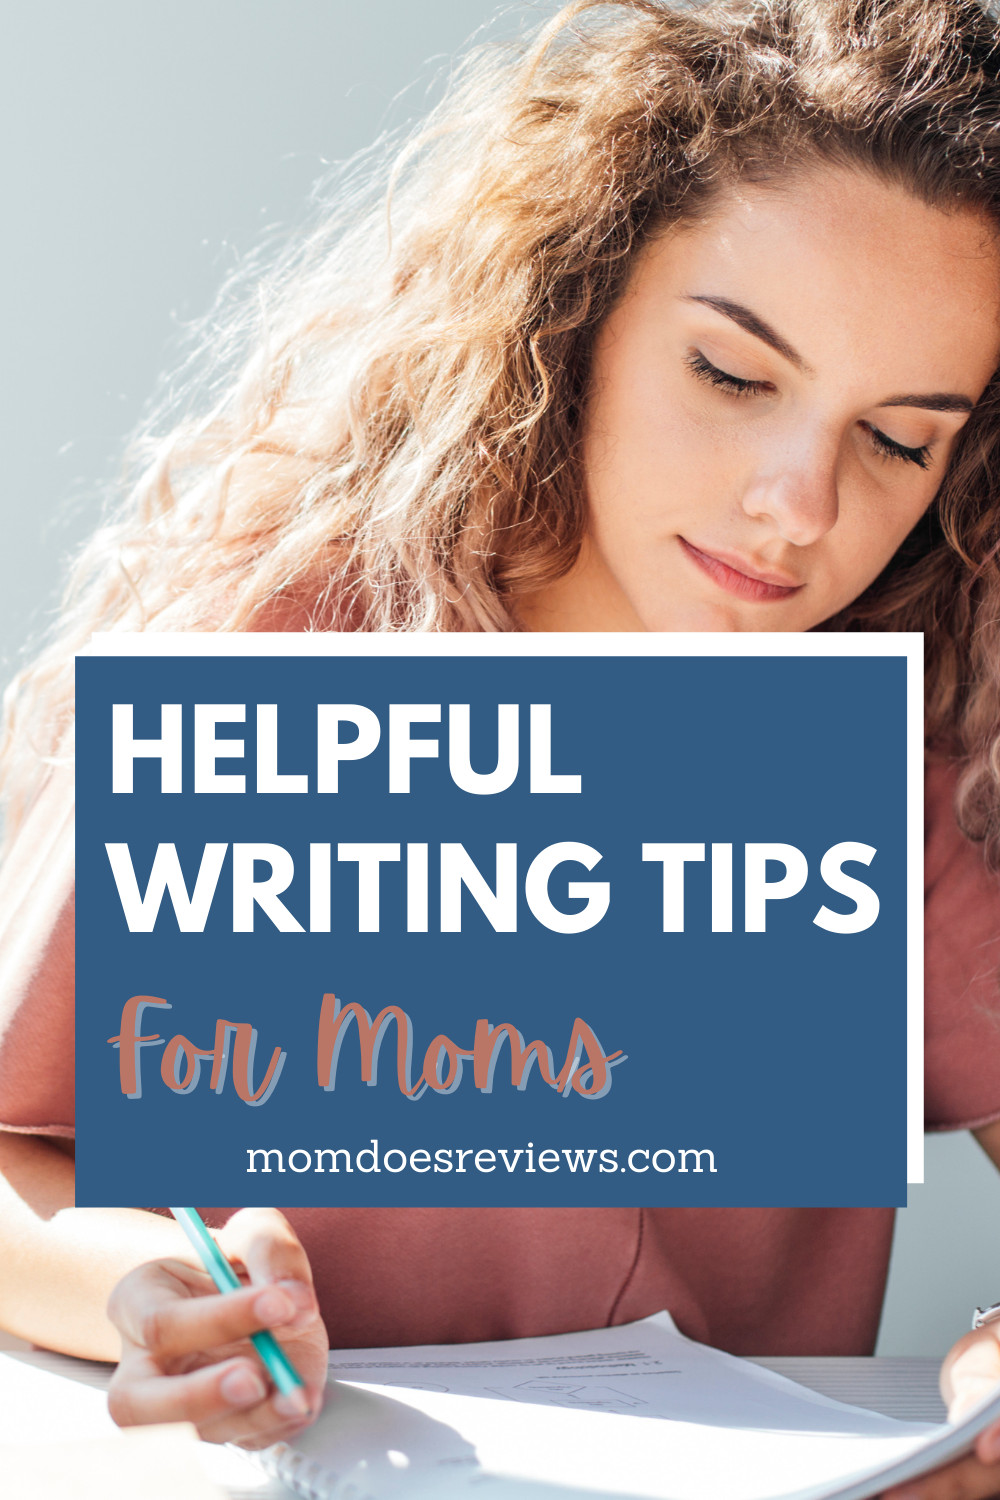 5 Writing Tips to Help You Become a Better Writer